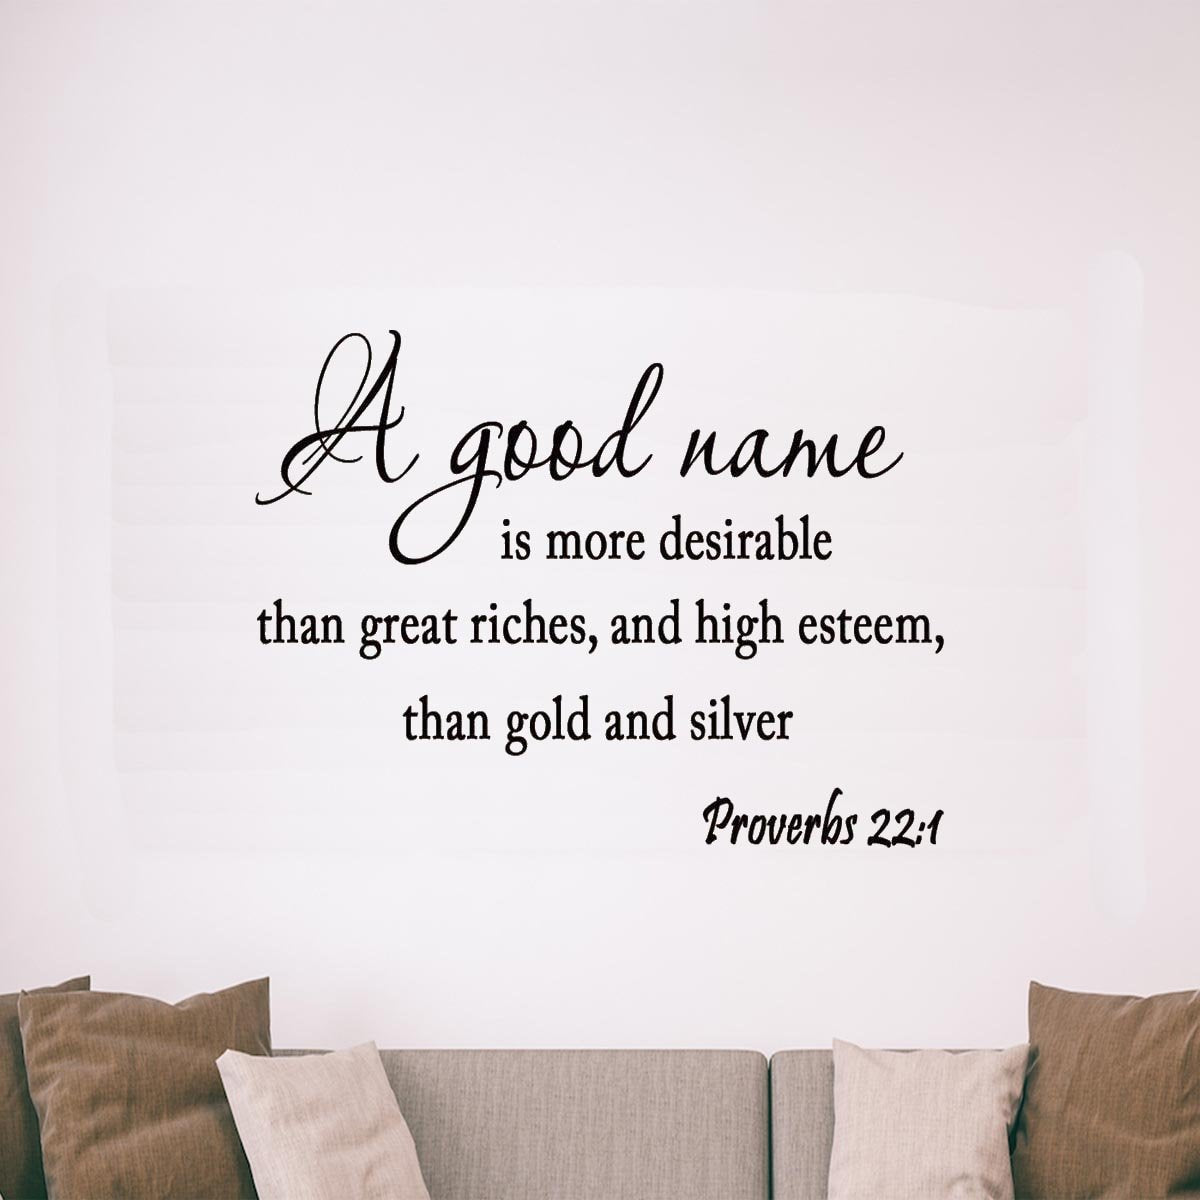 A Good Name is more Desirable than Great Riches Bible Wall Quotes - VWAQ Vinyl Wall Art Quotes and Prints